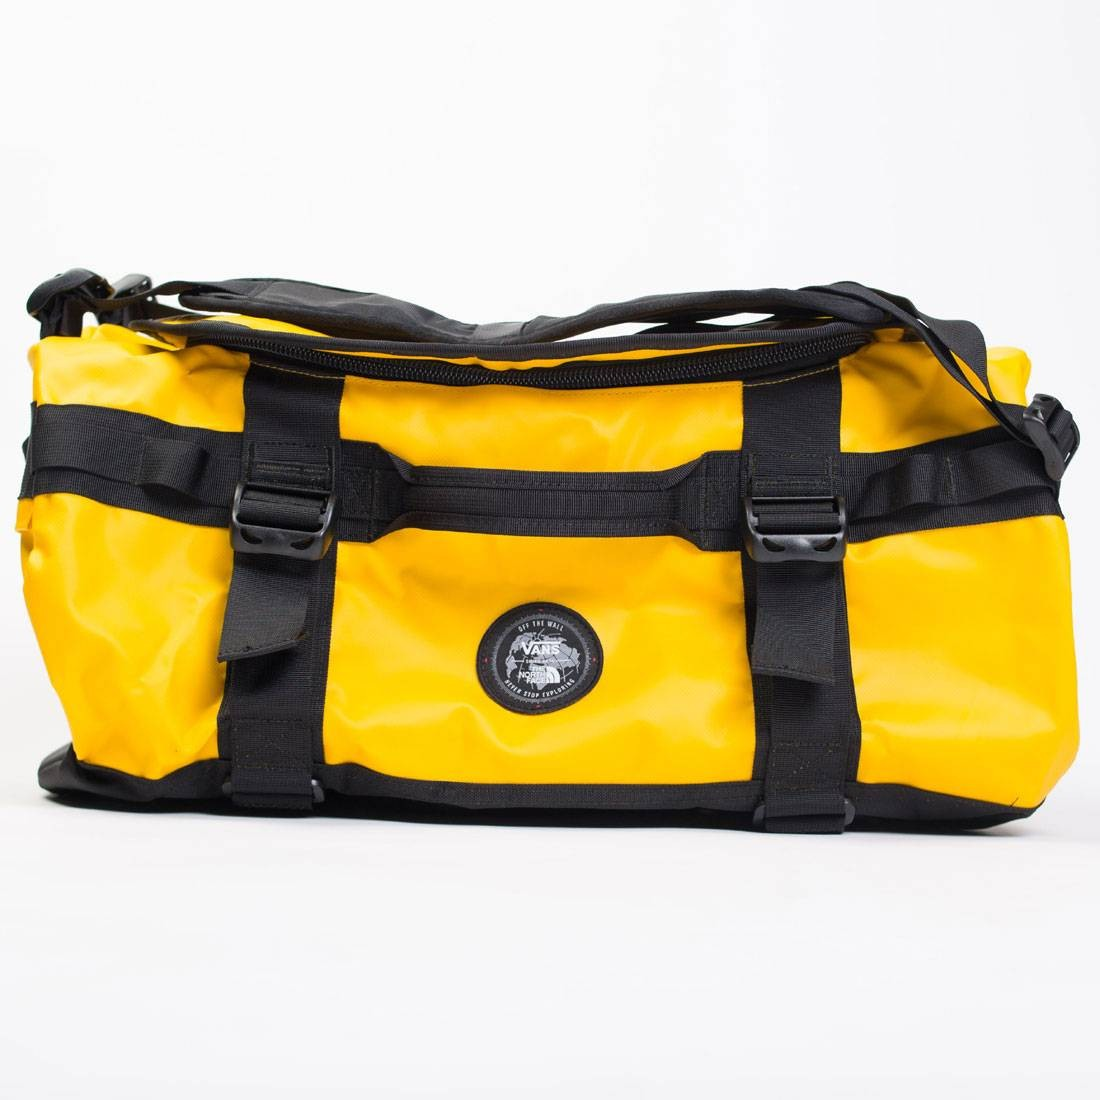 984bd2f241 Vans x The North Face Base Camp Duffel Bag yellow